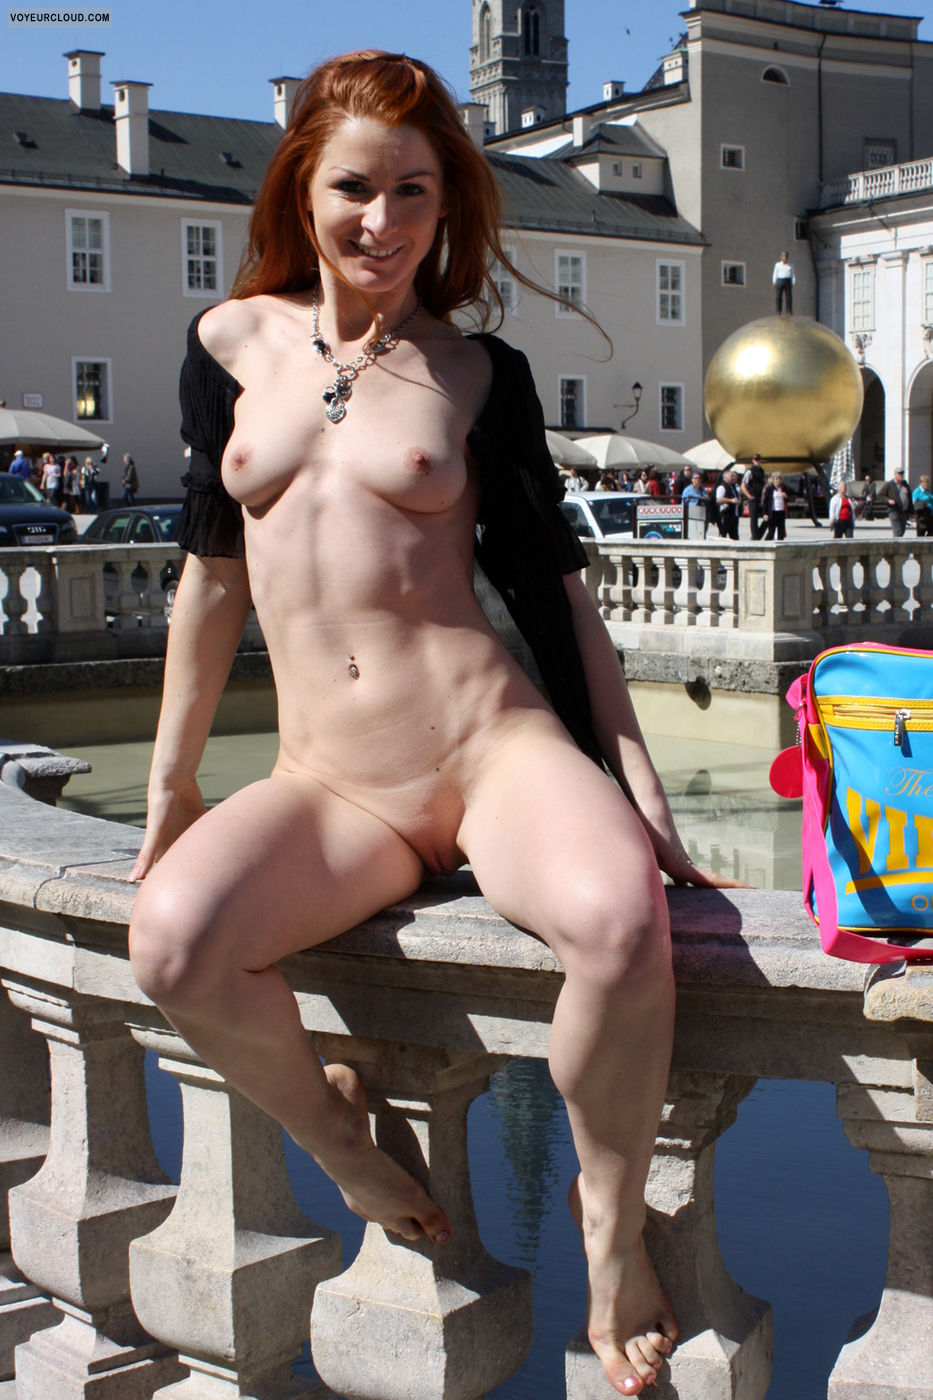 vienna-hot-day-in-salzburg-public-nude-10